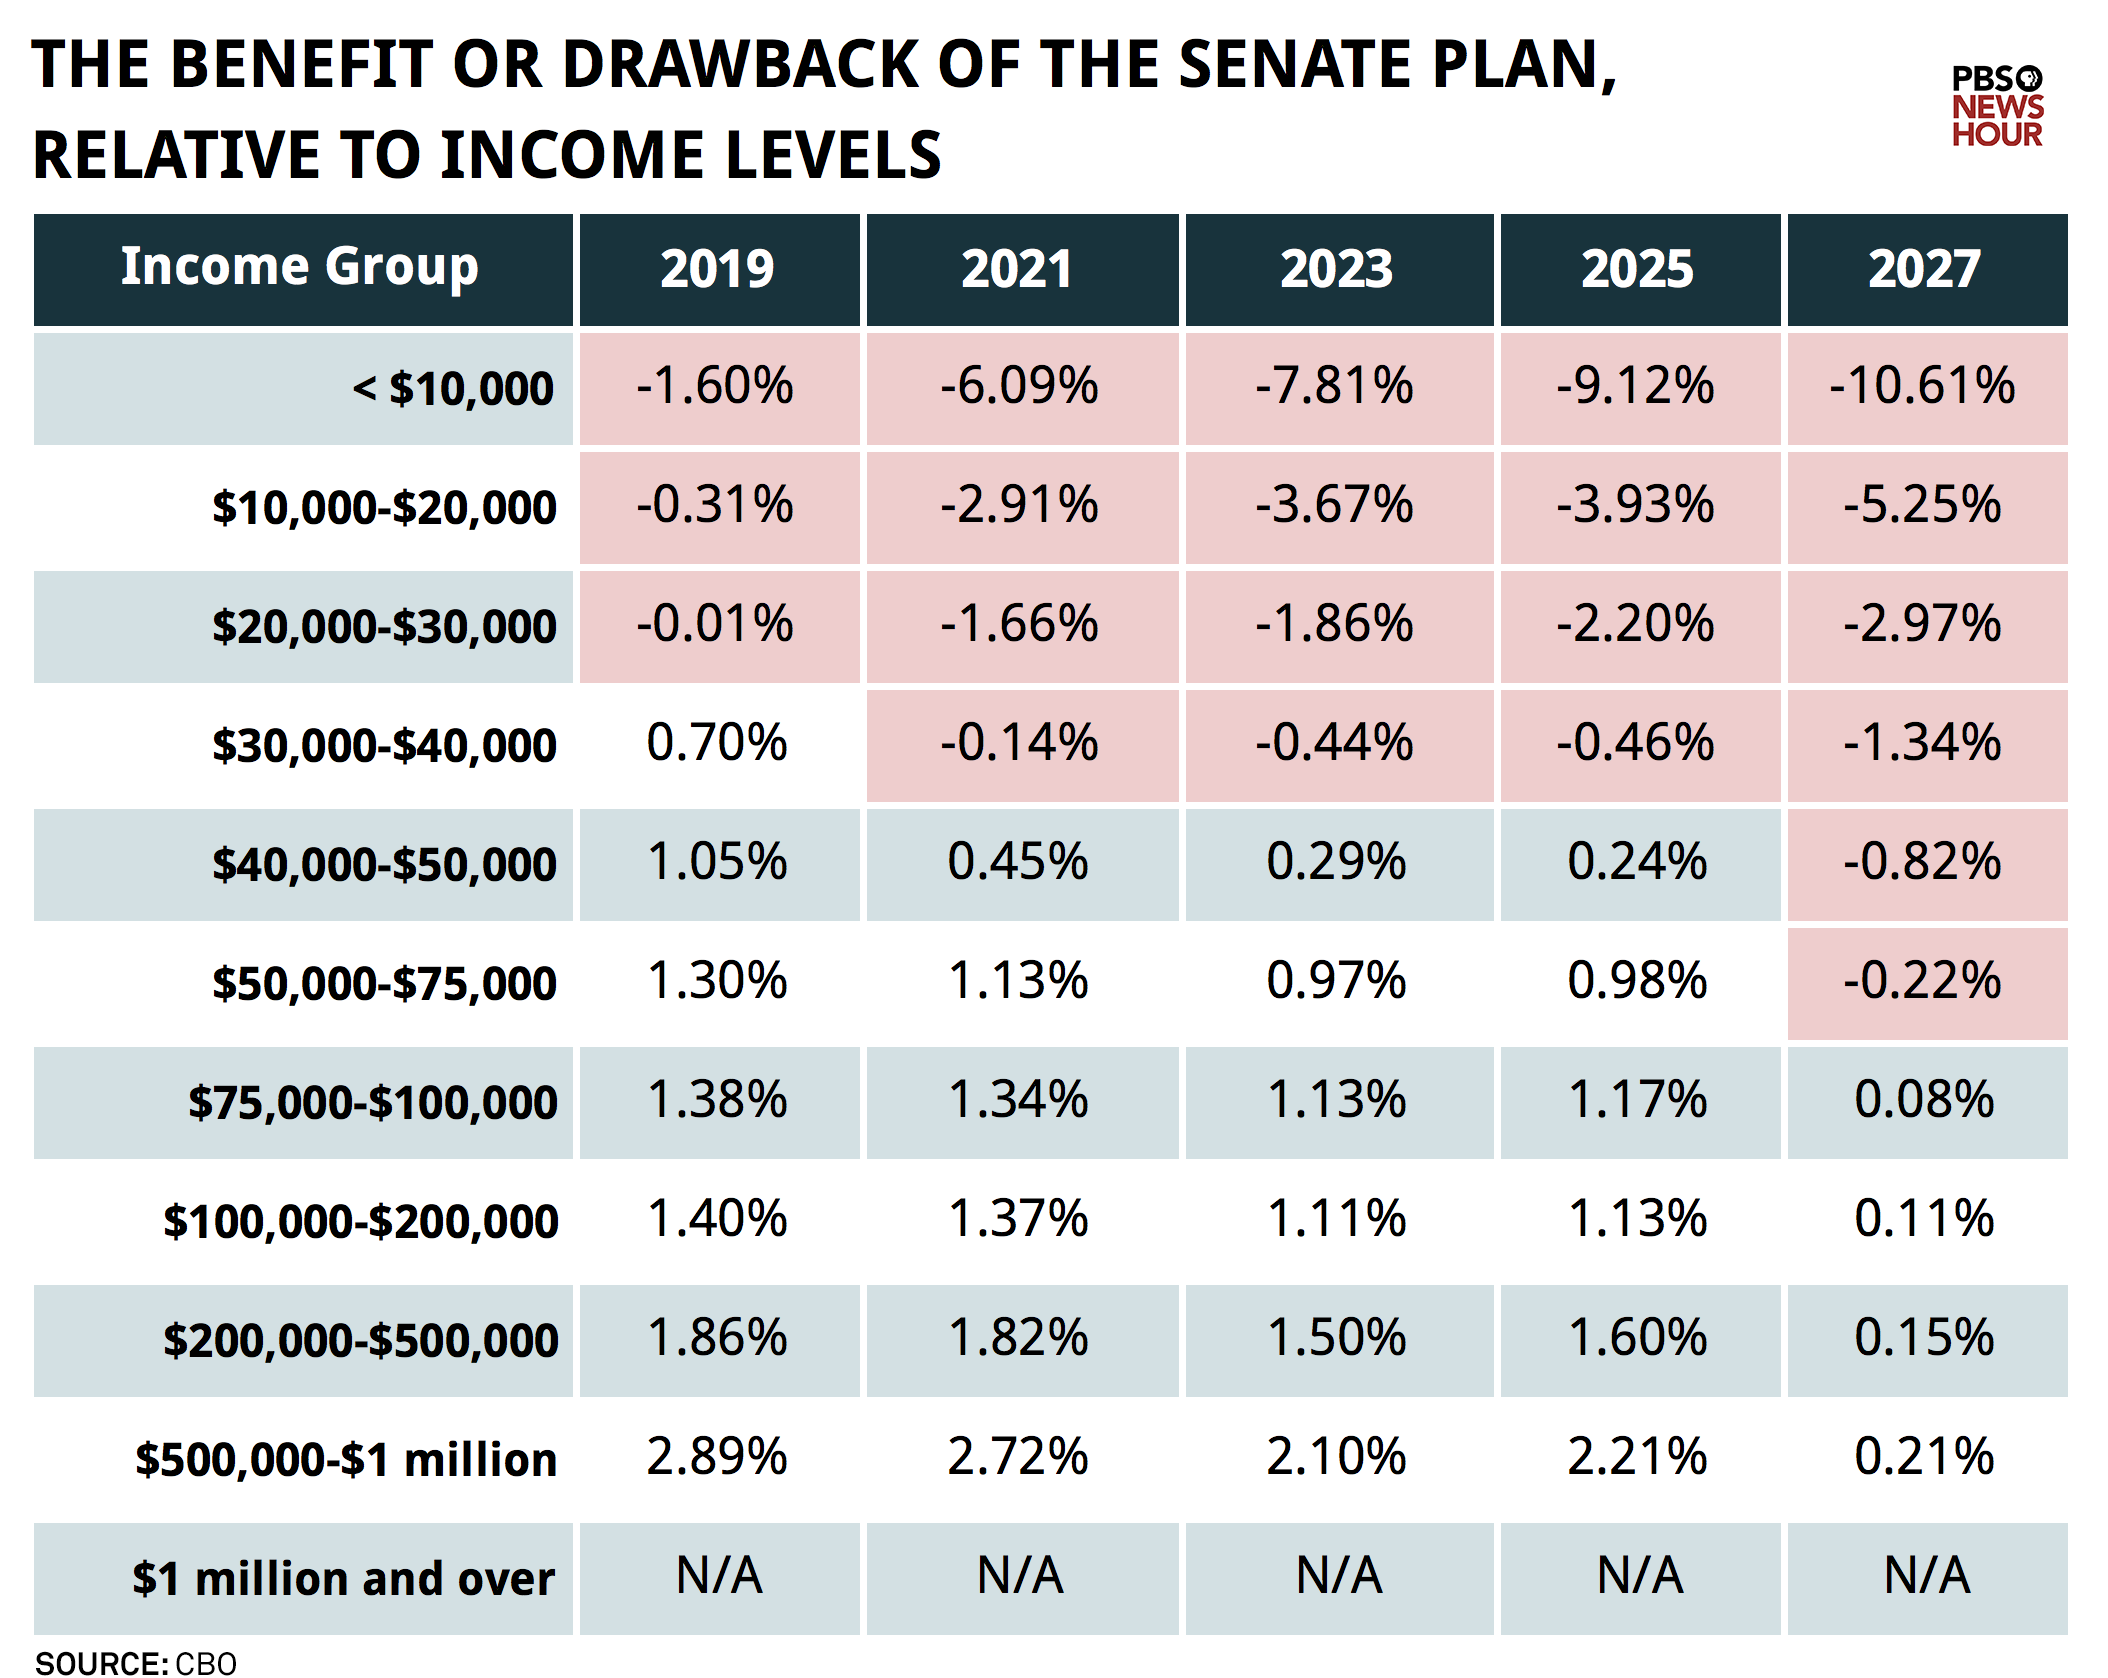 The benefit or drawback of the senate plan relative to income levels